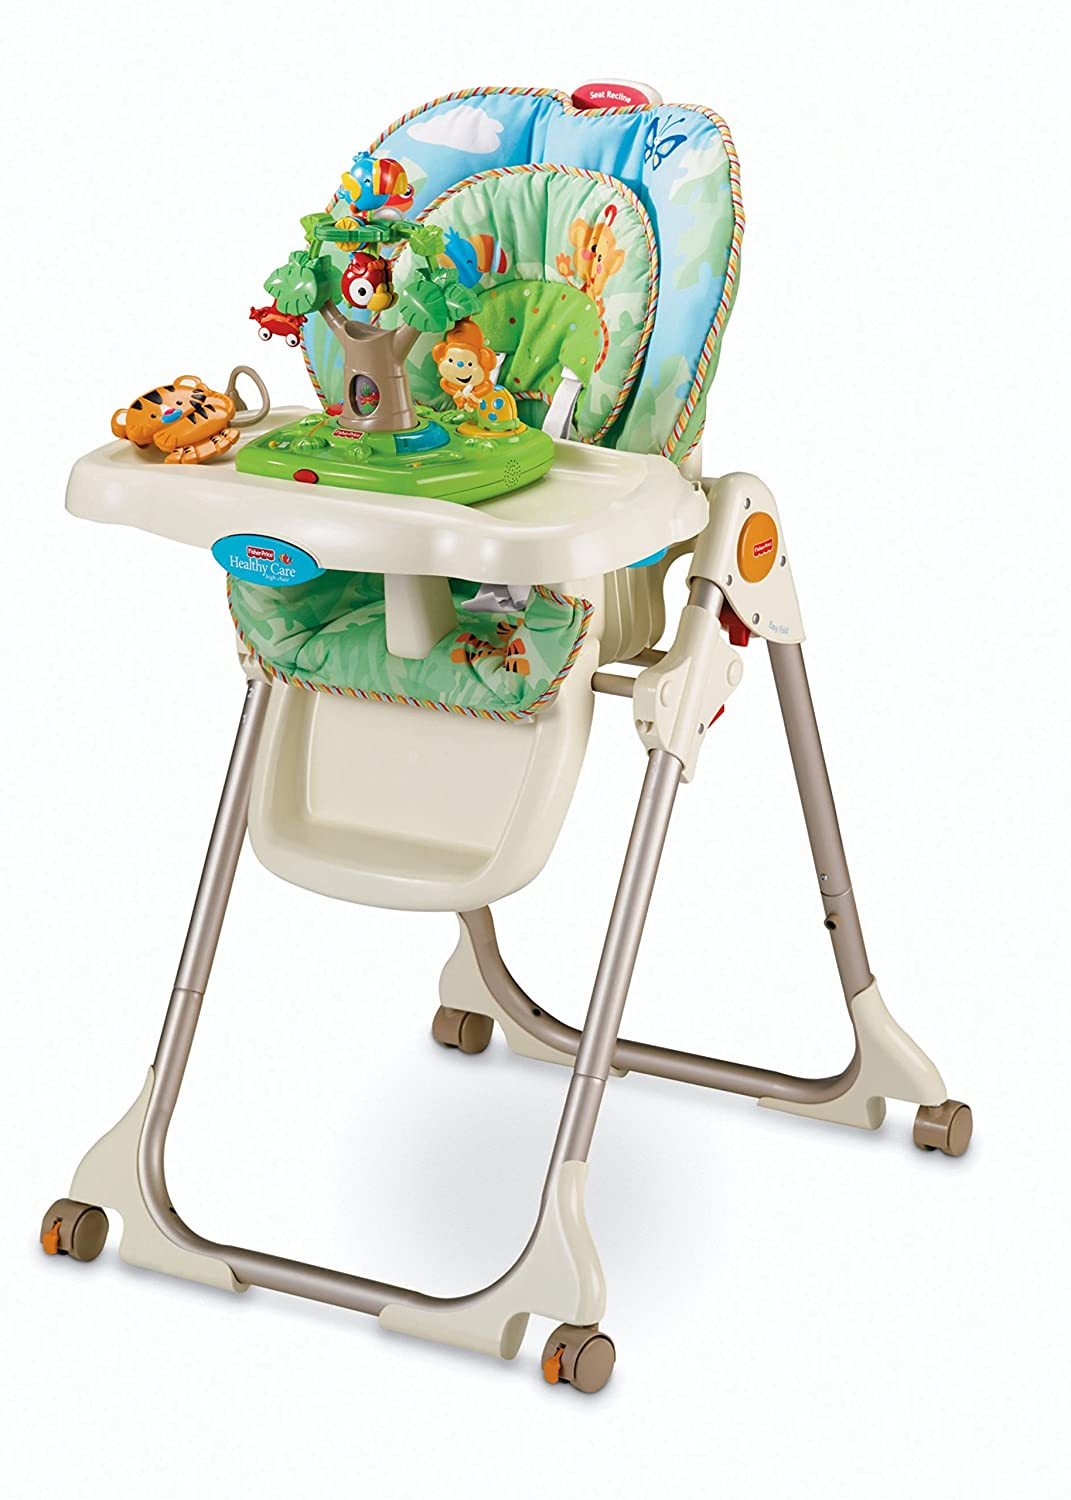 Fisher price precious planet high chair - Amazon Com Fisher Price Rainforest Healthy Care High Chair Childrens Highchairs Baby